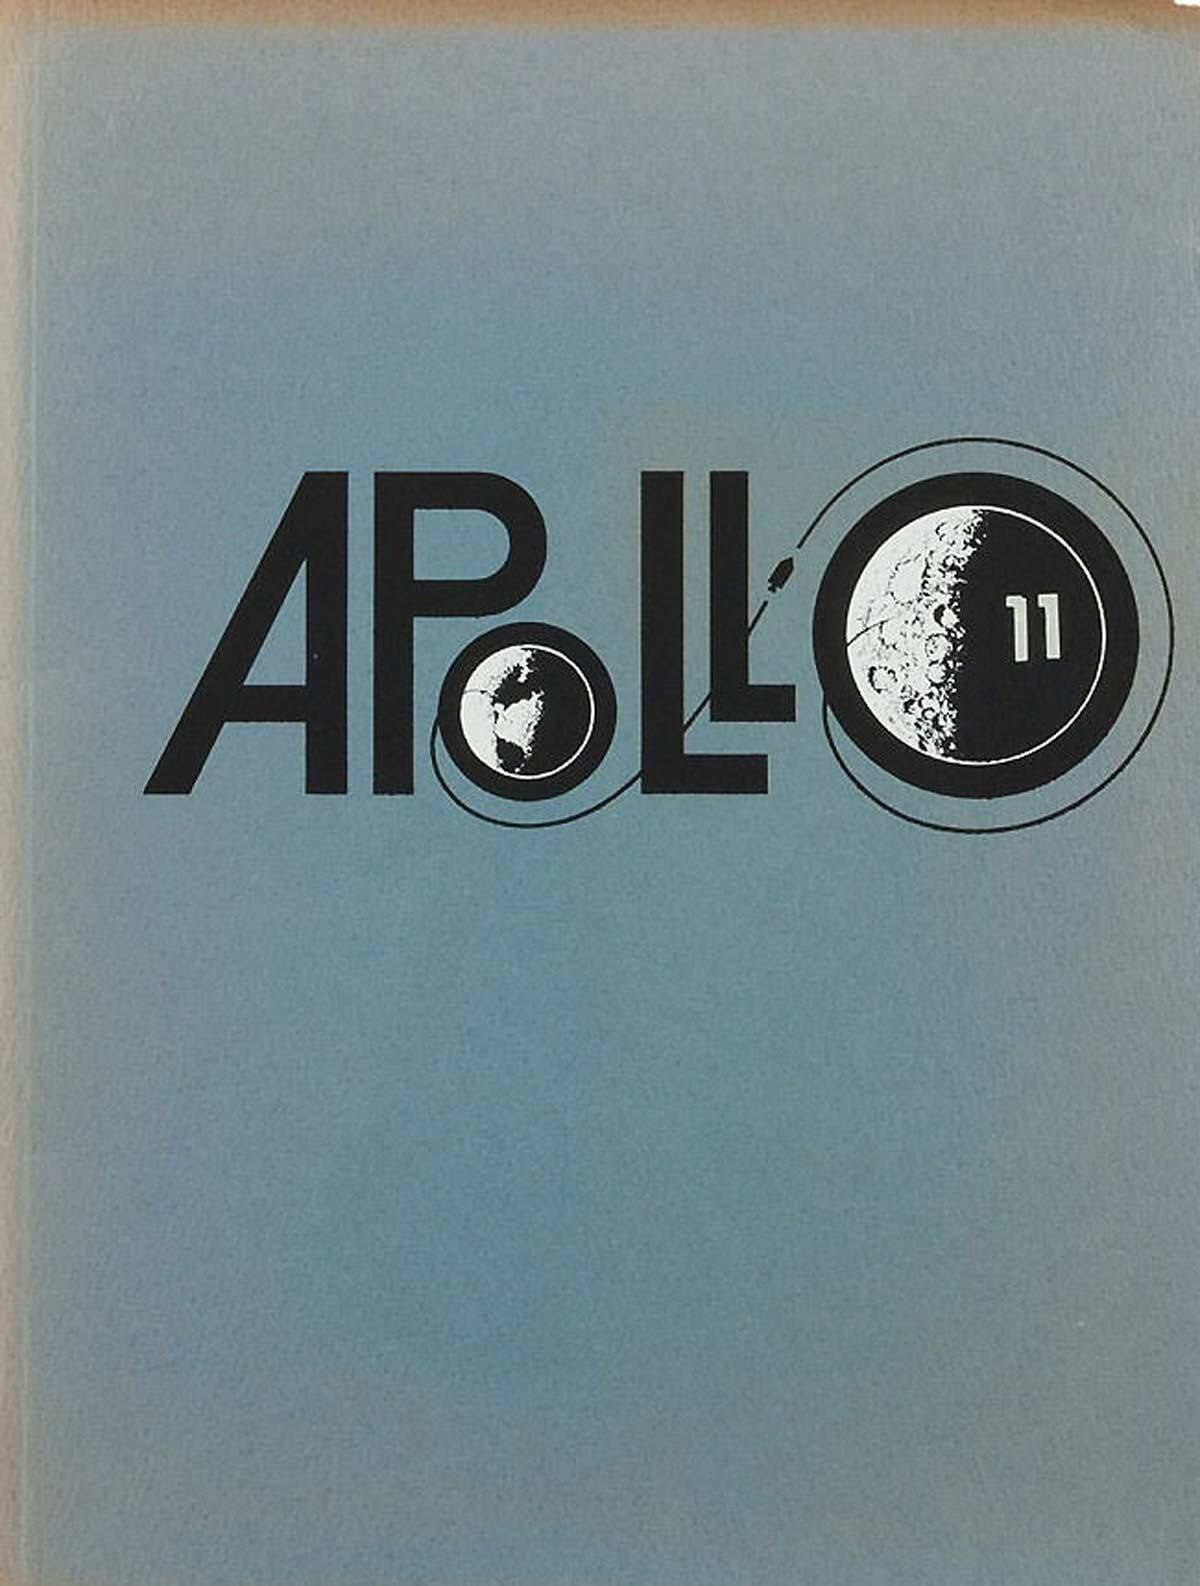 Apollo-11-Logo-Design-on-Vintage-NASA-Brochure-1200x1586